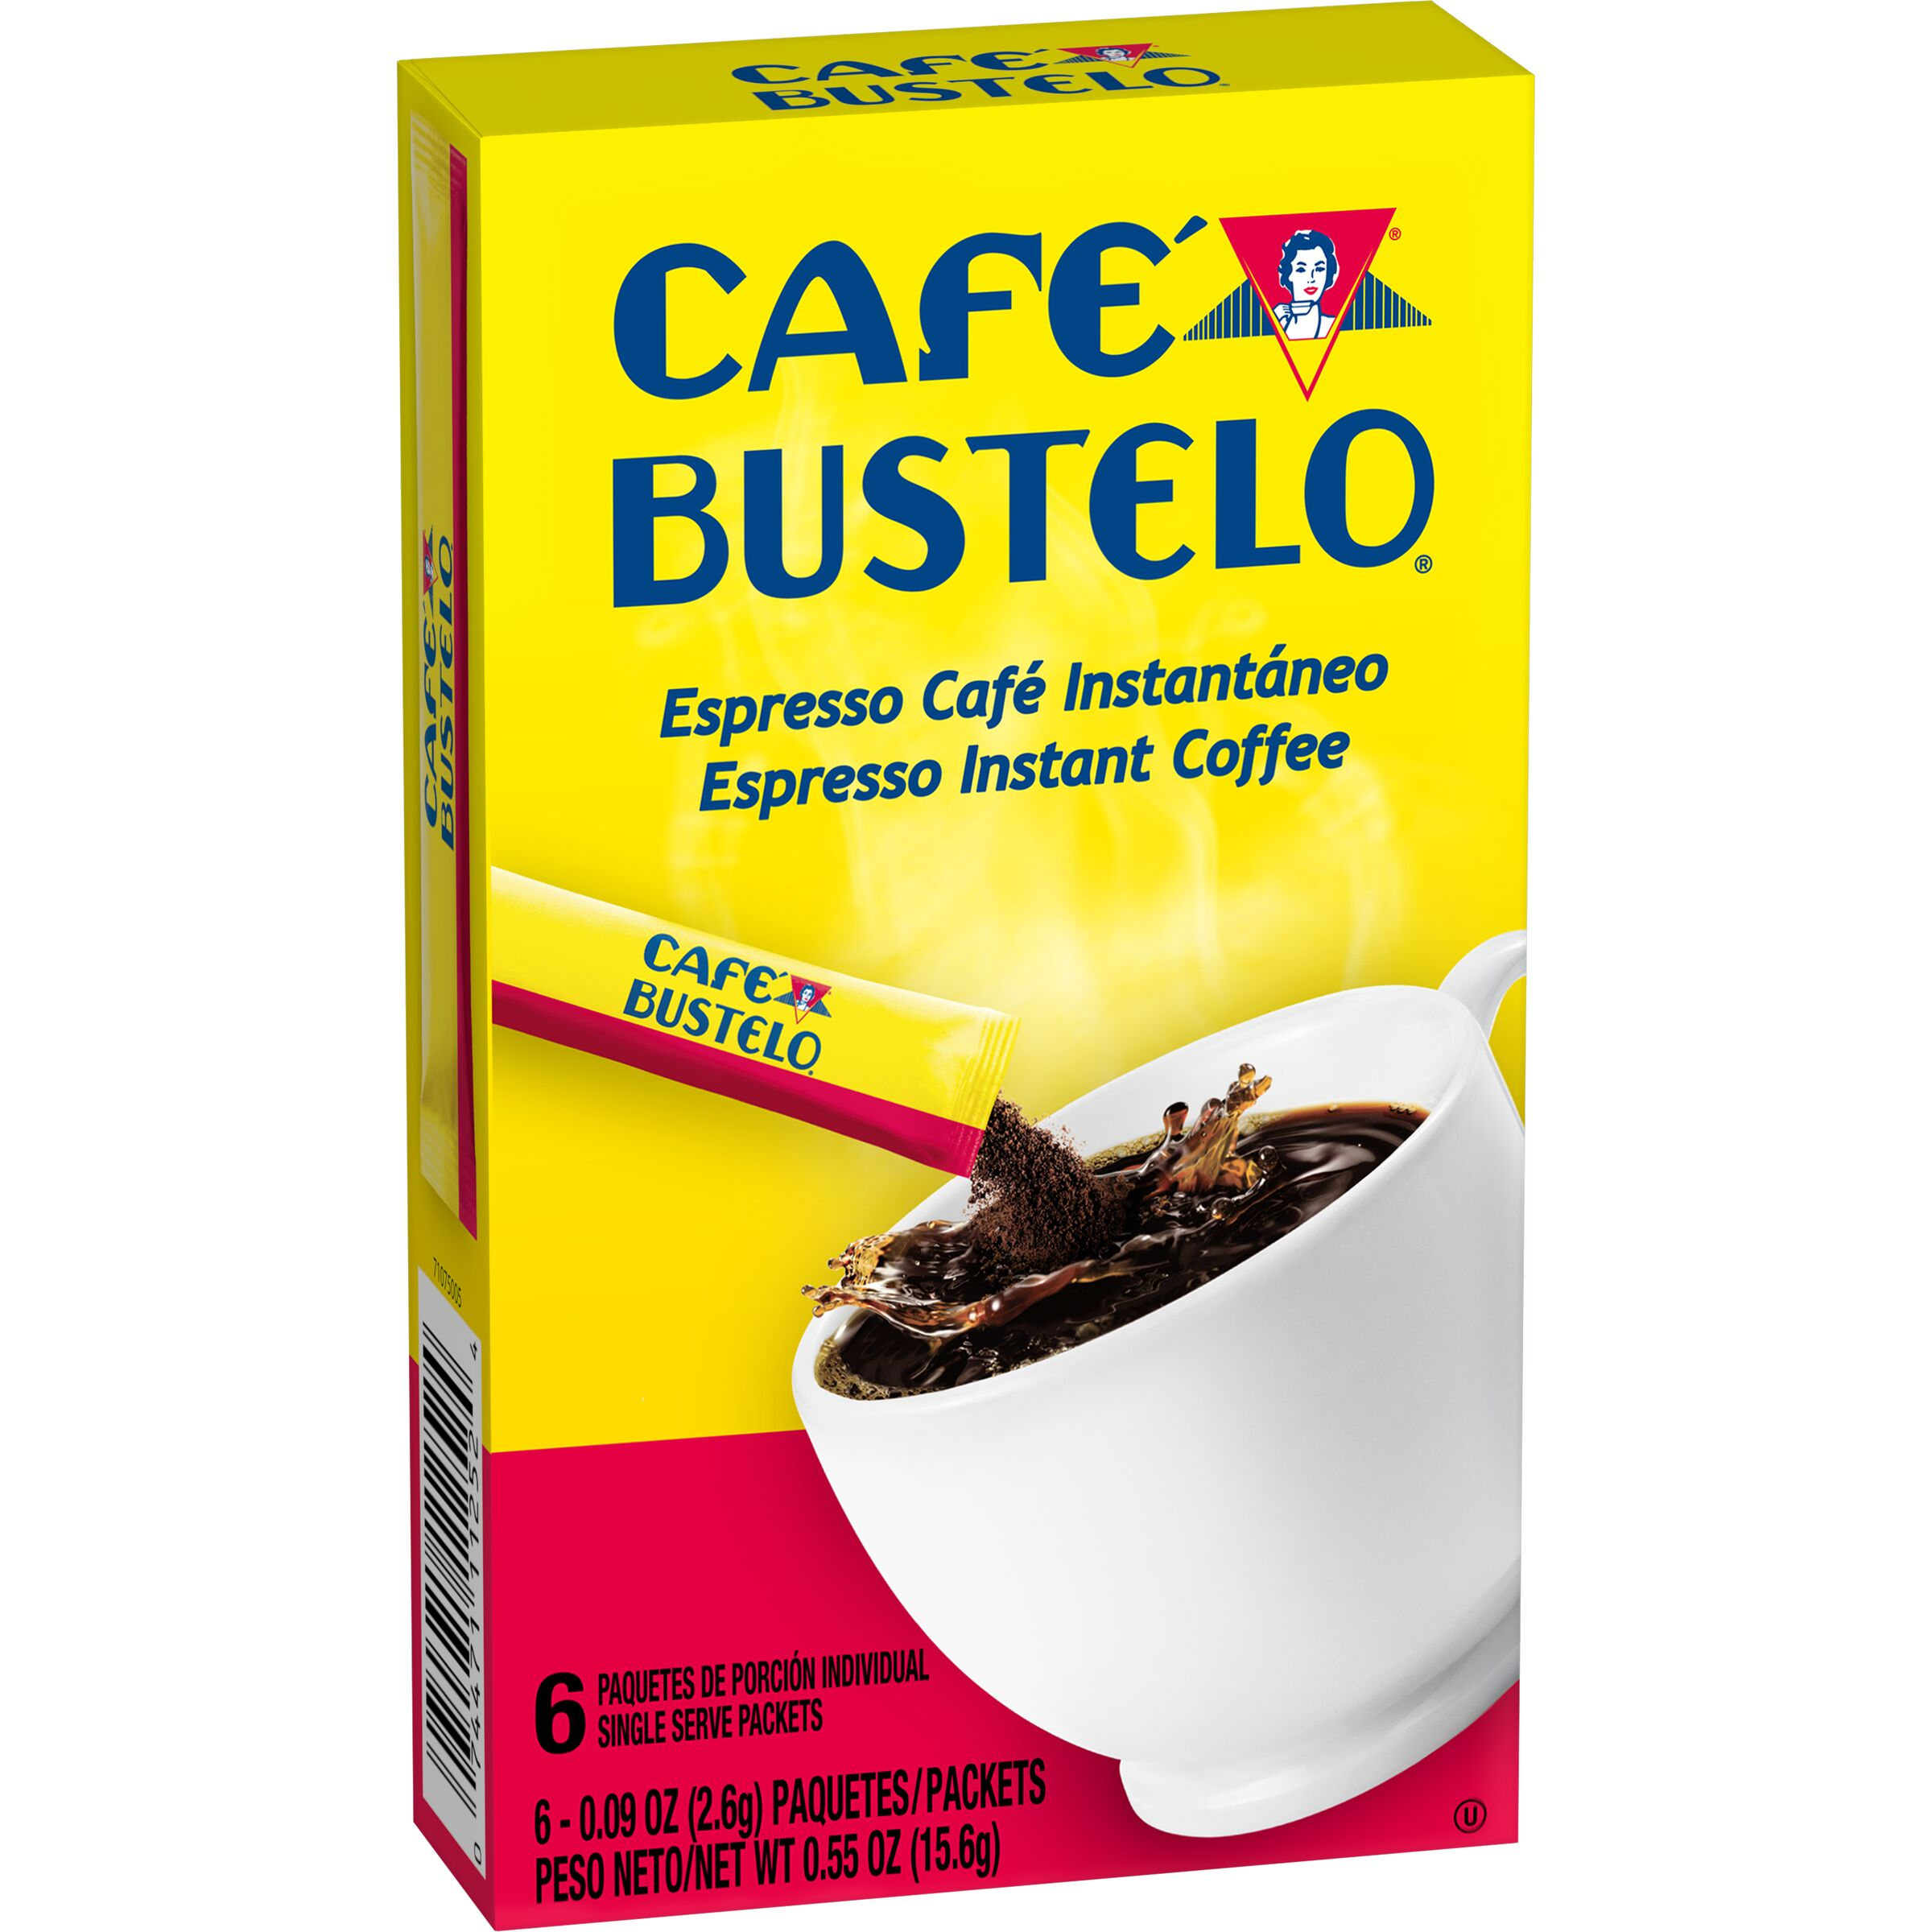 Cafe Bustelo  Espresso Instant Coffee Single Serve Packets, 6 Count